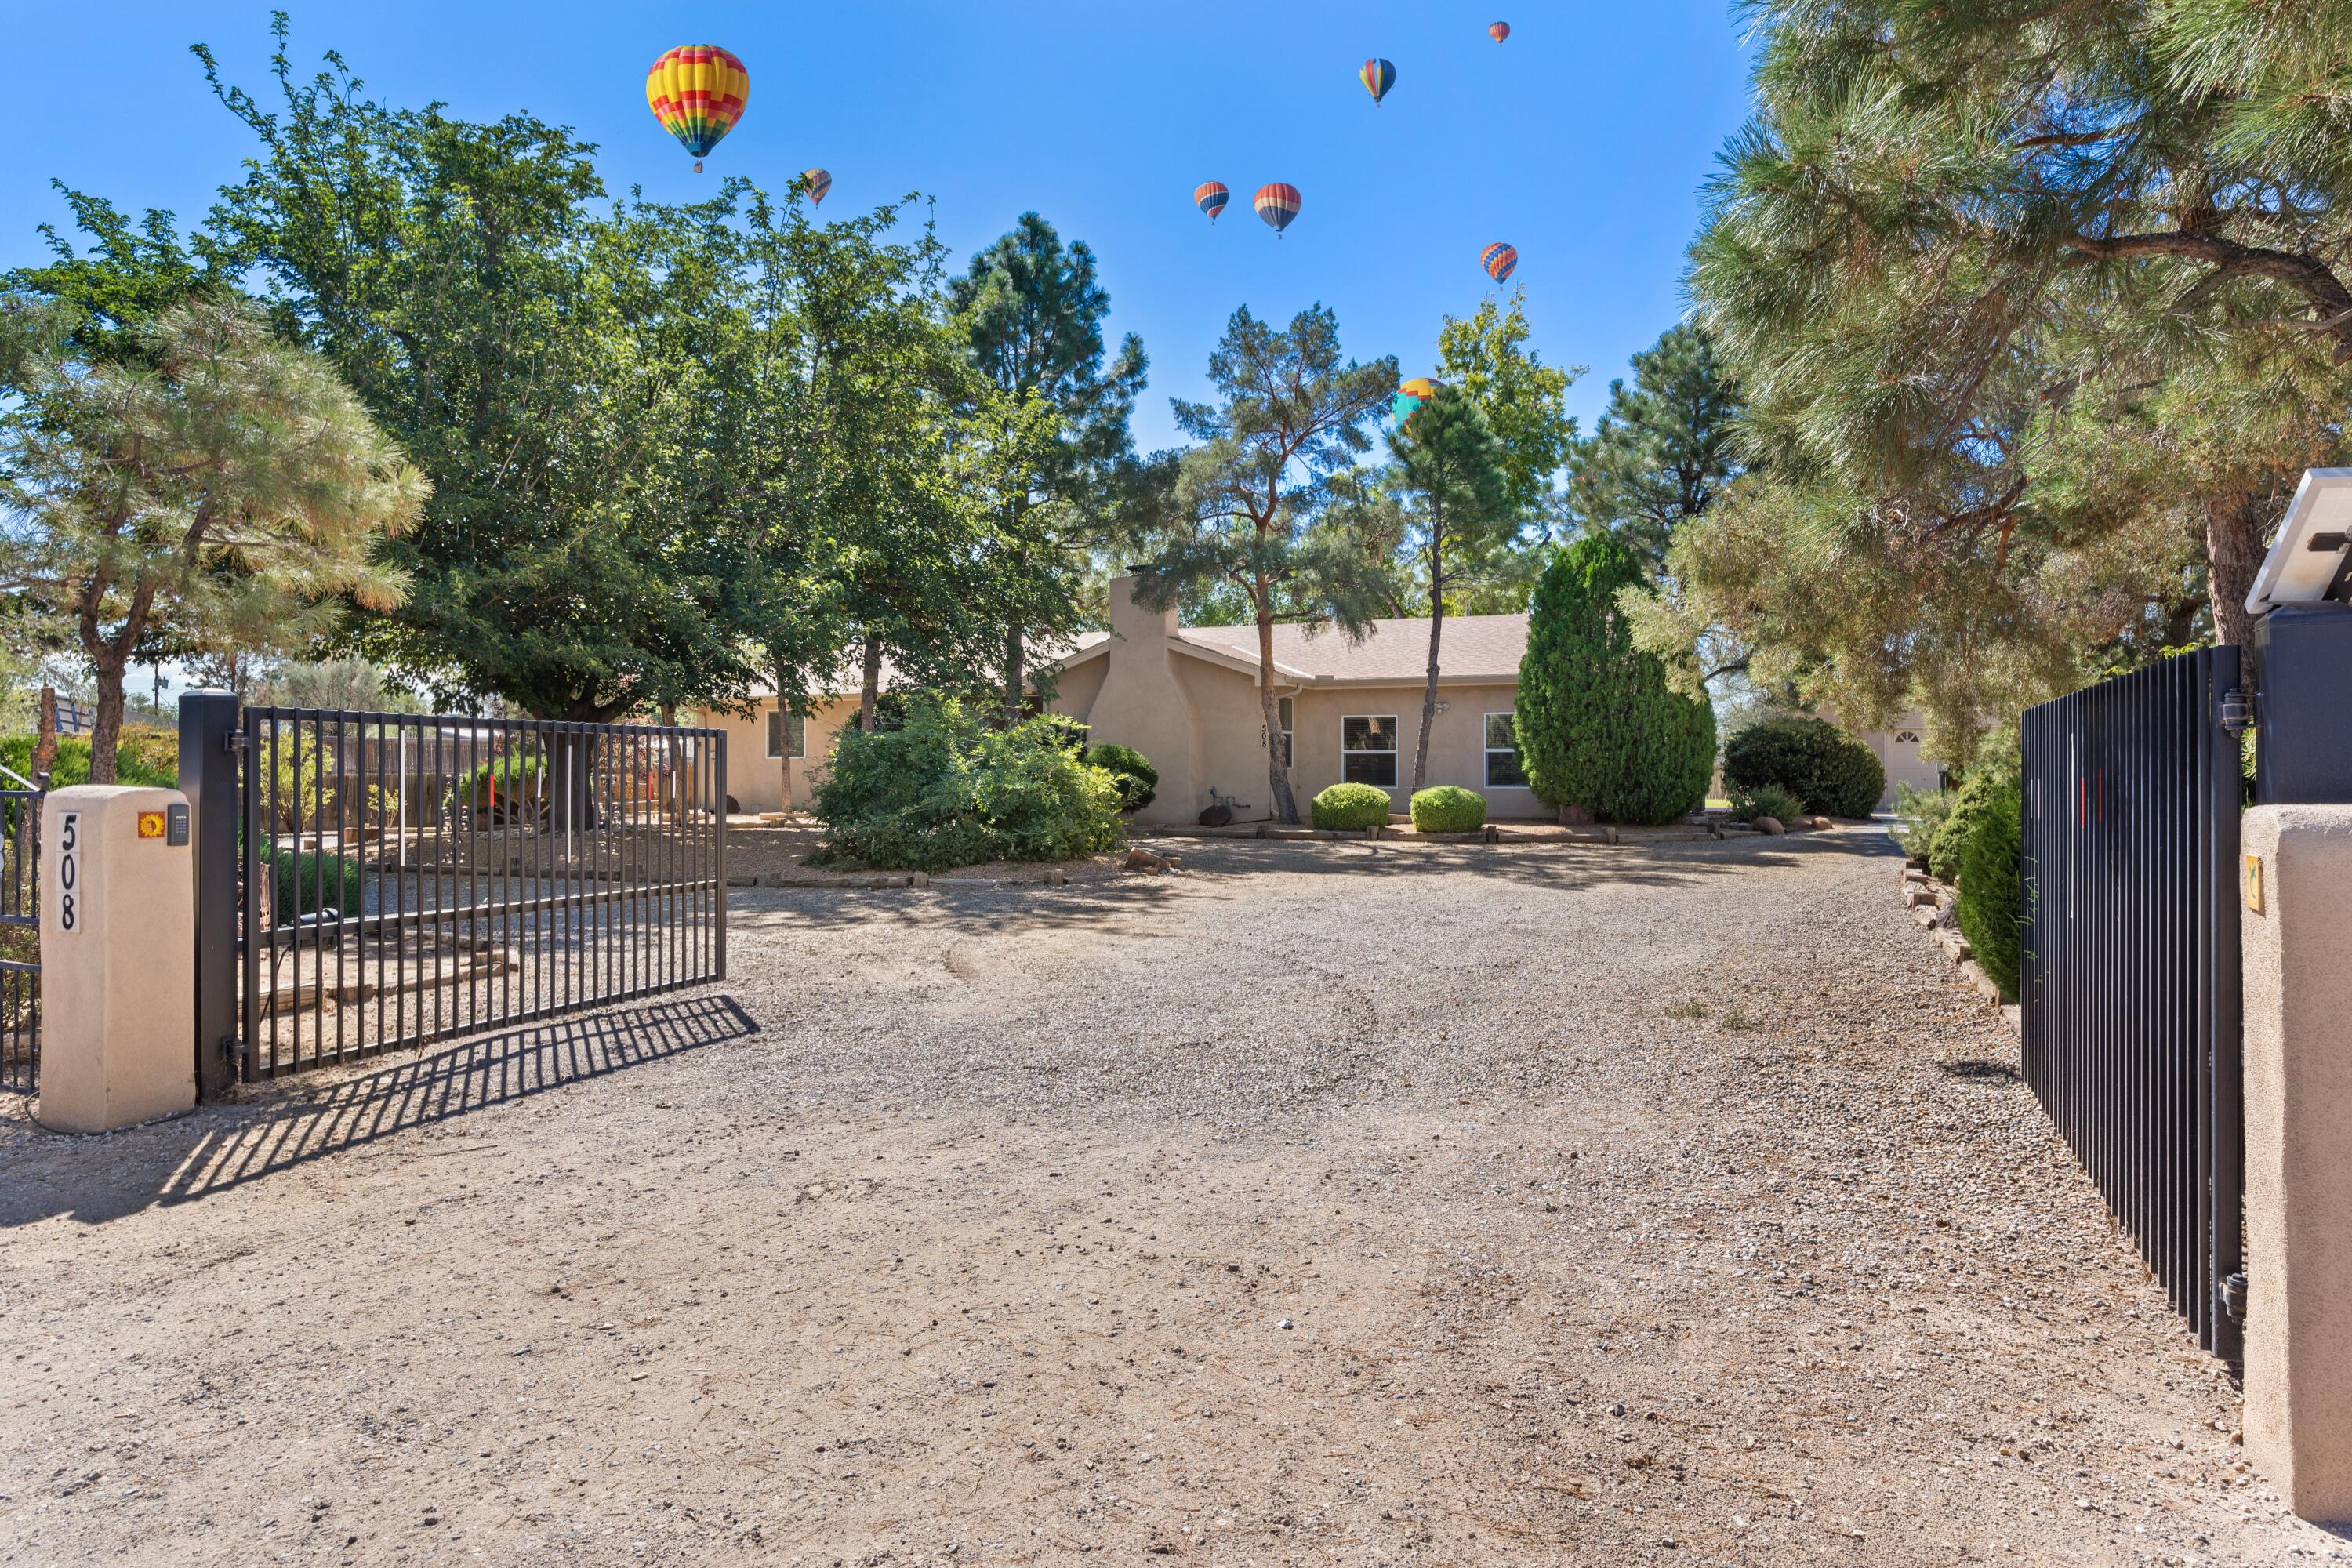 Plenty of room for your HORSES & HORSE POWER! Gorgeous approx 1.26 acre NV Village of Los Ranchos Horse Property. One of a kind, rare opportunity to own private gated valuable Sub-dividable lot. 4BD/3.5 BA renovated 2015 w/hardwood oak floors, 2015 roof, HVAC, HWH, windows, insulation, refrigerated air/heat throughout home. 1000sf grand sunroom w/ tile setting the stage for peace & relaxation. Recessed Lighting & Skylights! New SS appl! This home shines like a diamond! Not incl in TSF Finished 1979sqft  heated/cooled 6 Car Tandem Garage/Shop w/220!  The possibilities are truly endless.1100sf Horse barn, plus storage, 2 patios, circular drive w/50+ trees & fenced lawn.1 mile to Alameda Open Space, trails & Rio Grande River, & 15 mins to Airport. Perfect for entertaining. RV parking/NO HOA!